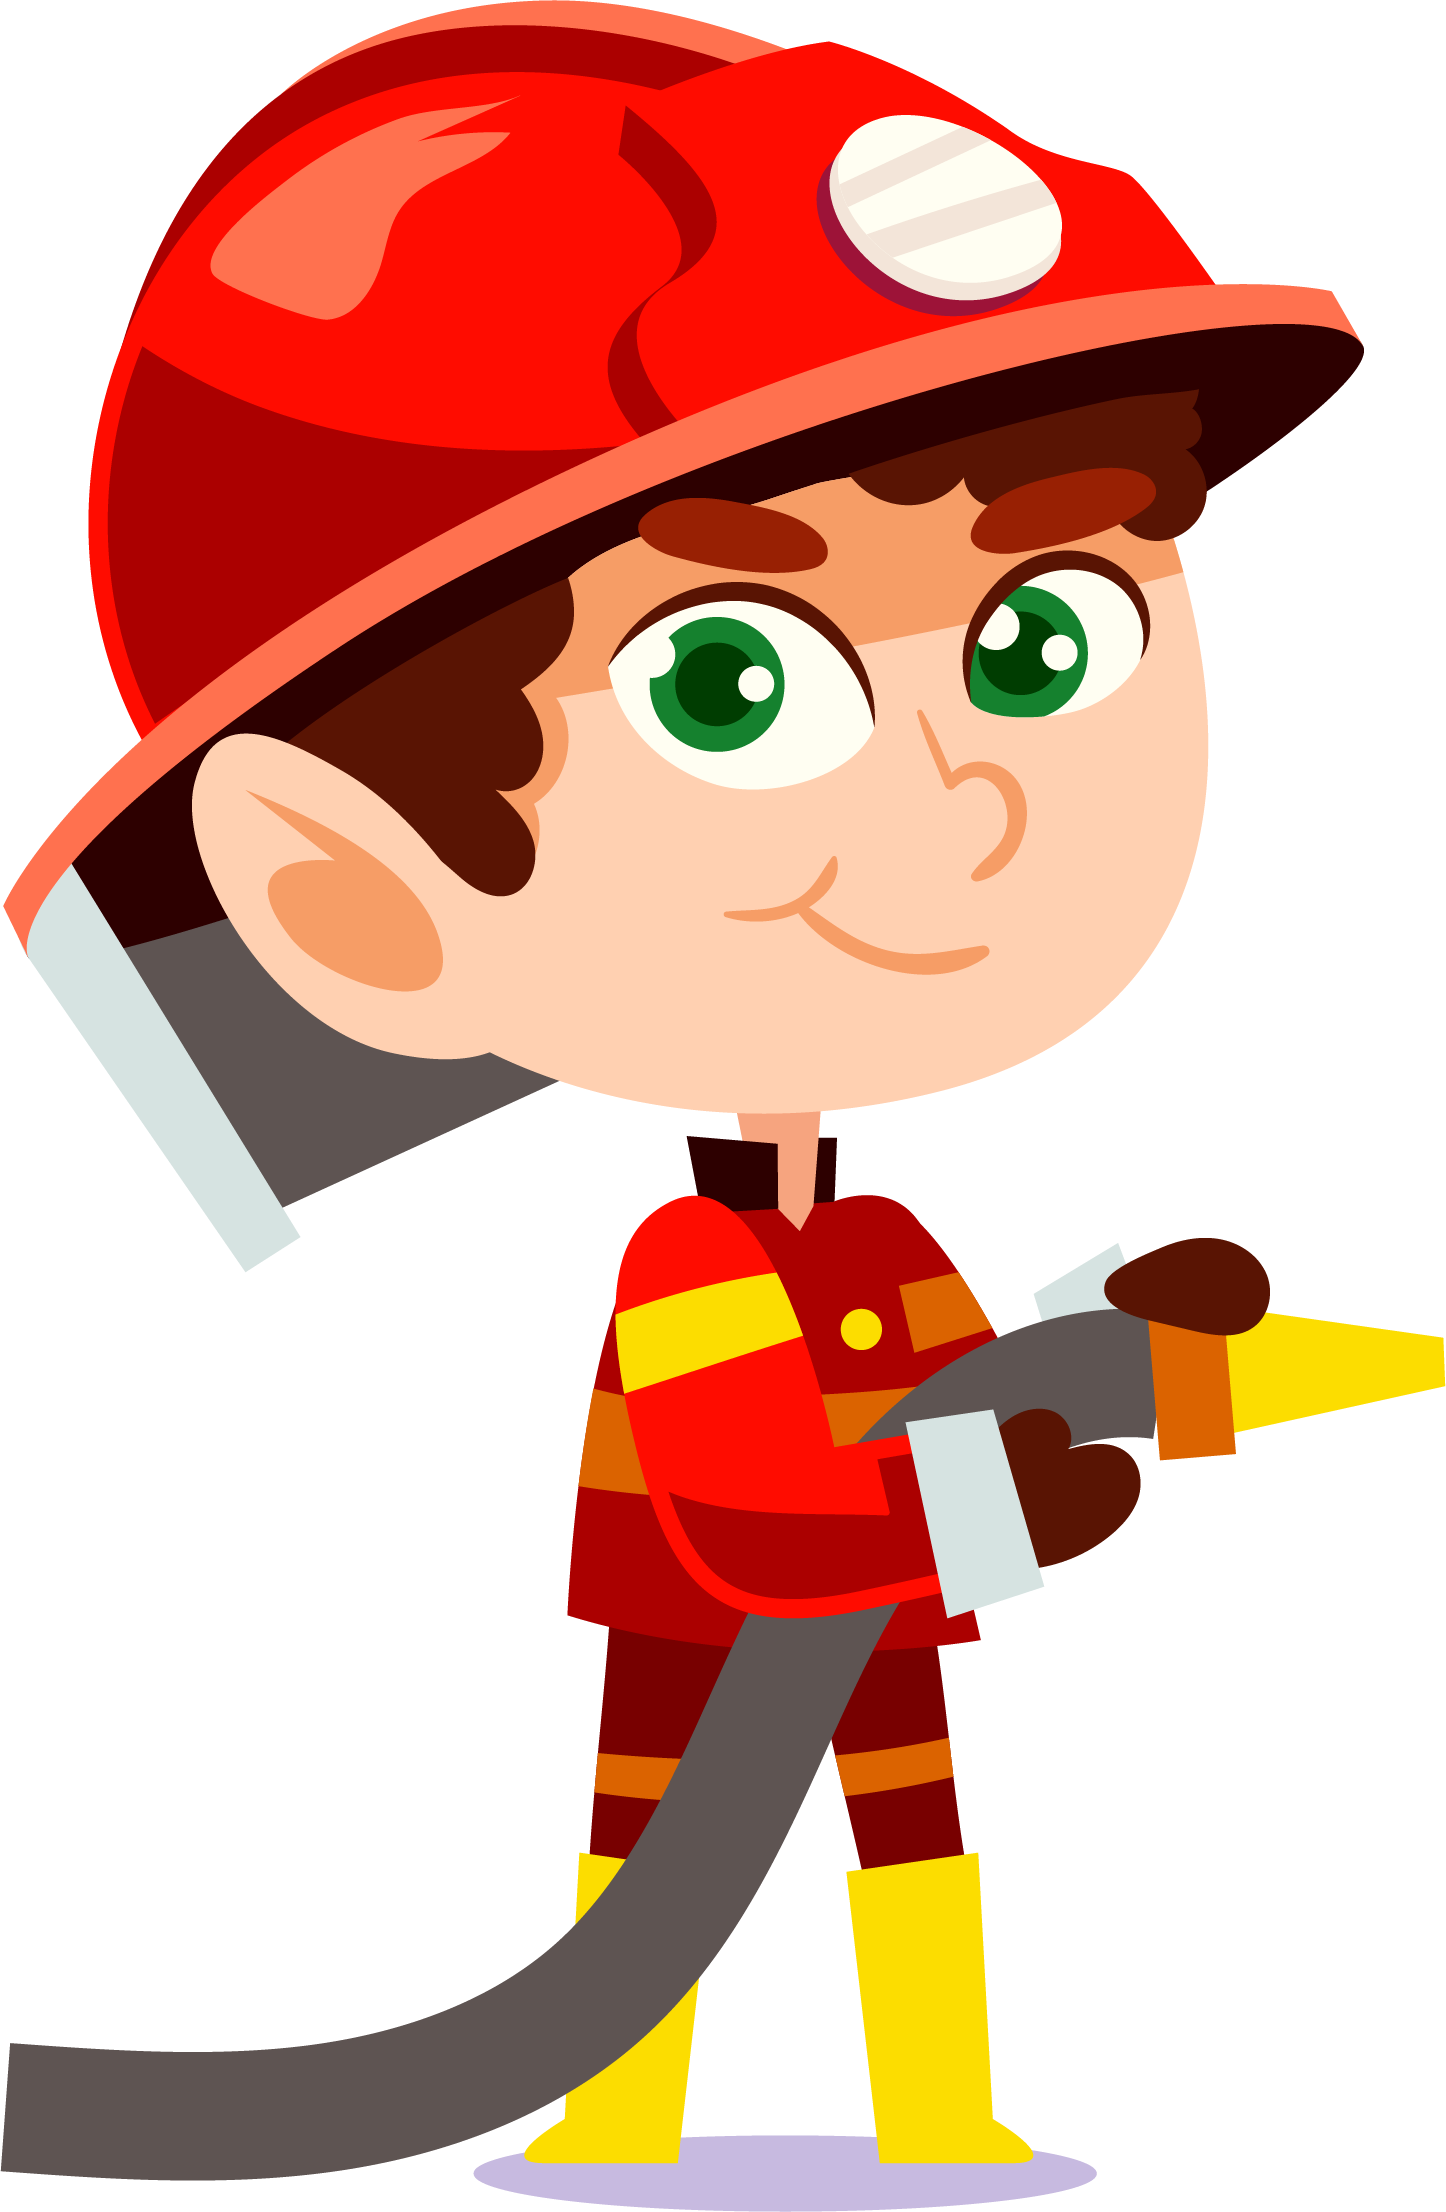 Department firefighting fighter. Firefighter clipart fire protection